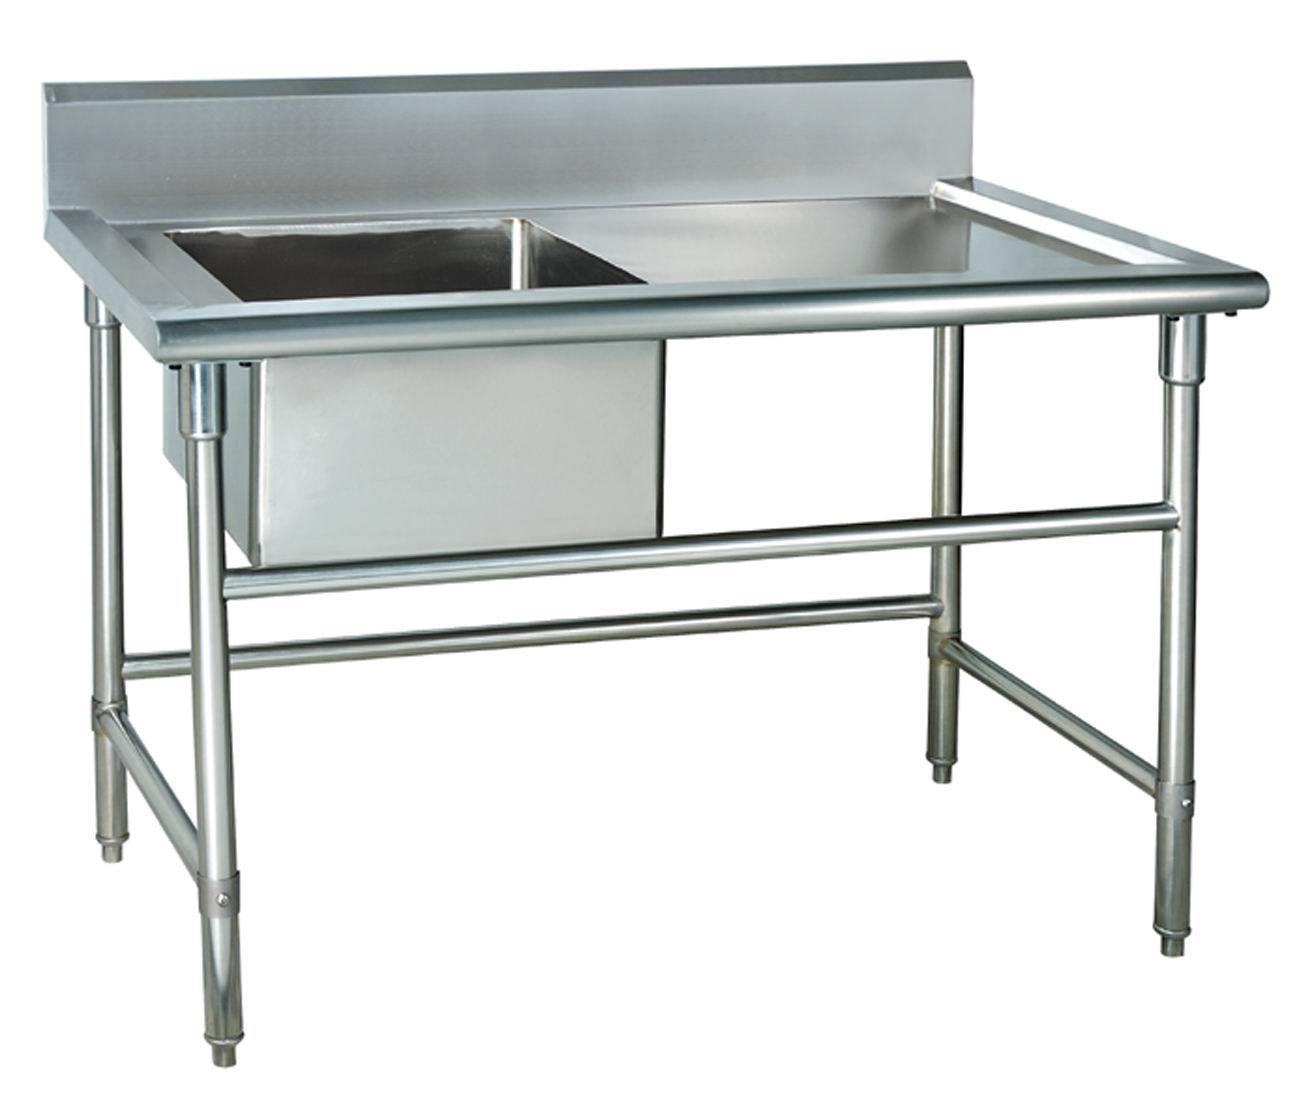 Stainless Steel Single Sink Workbench  Wash Basin